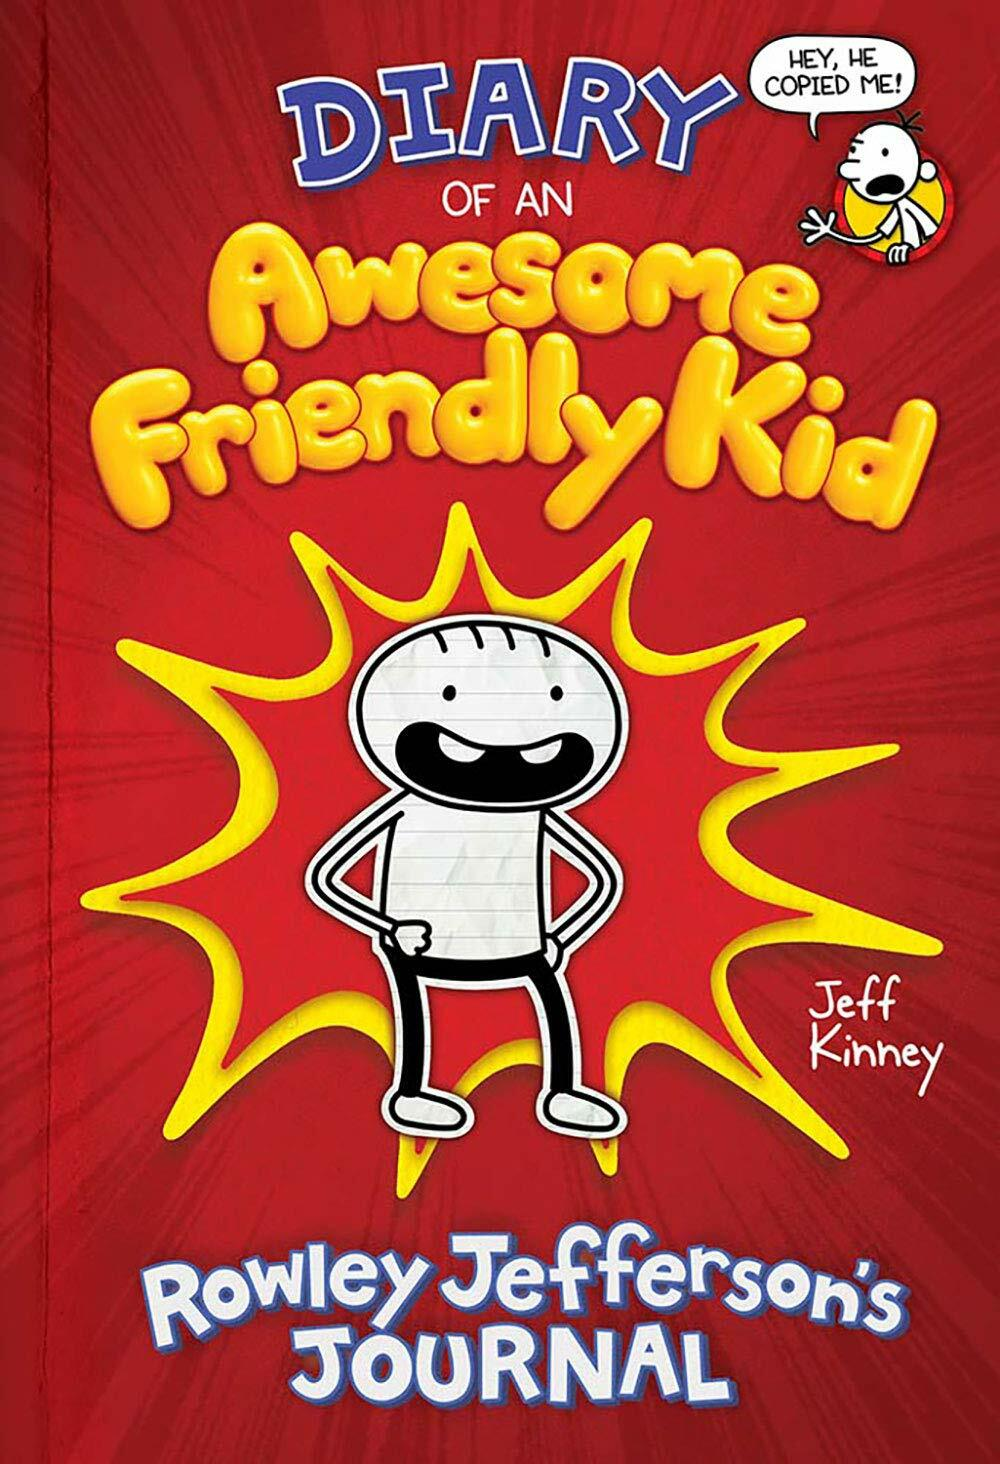 Diary of an Awesome Friendly Kid: Rowley Jeffersons Journal (Hardcover)